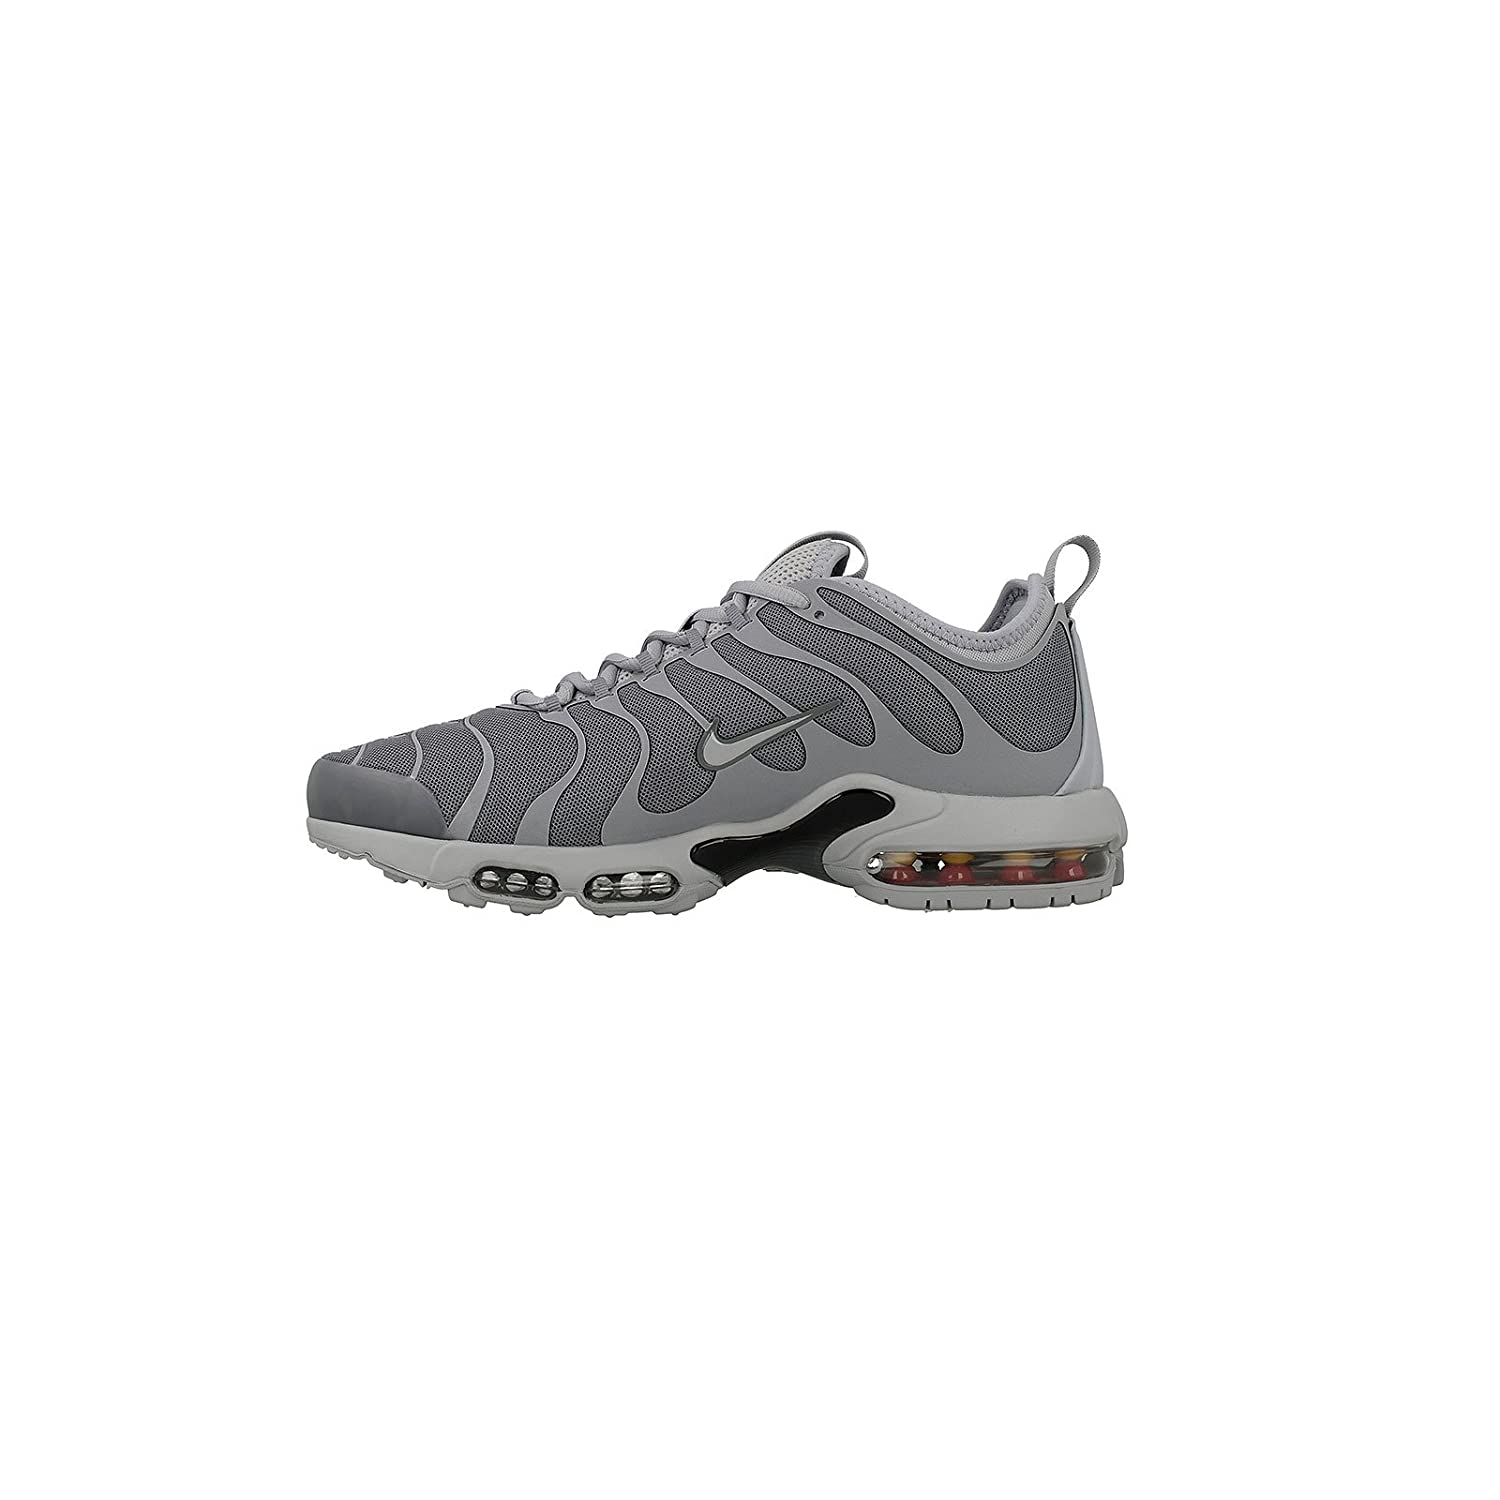 Nike Air Max Plus TN Ultra Lifestyle Casual Sneakers Cool